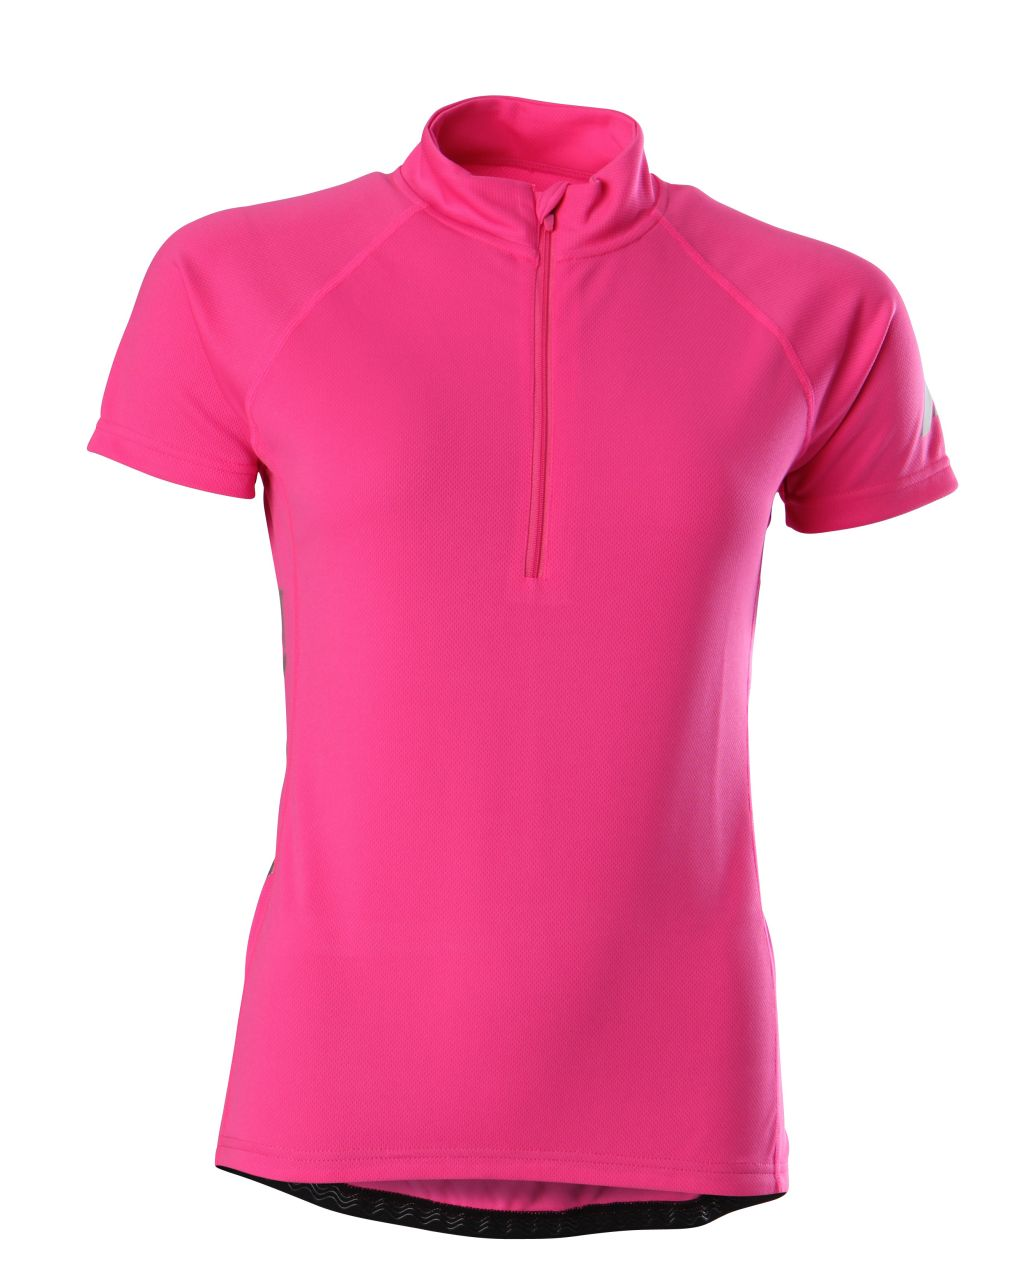 Pro Touch Spinster 1/2 Zip Shirt W